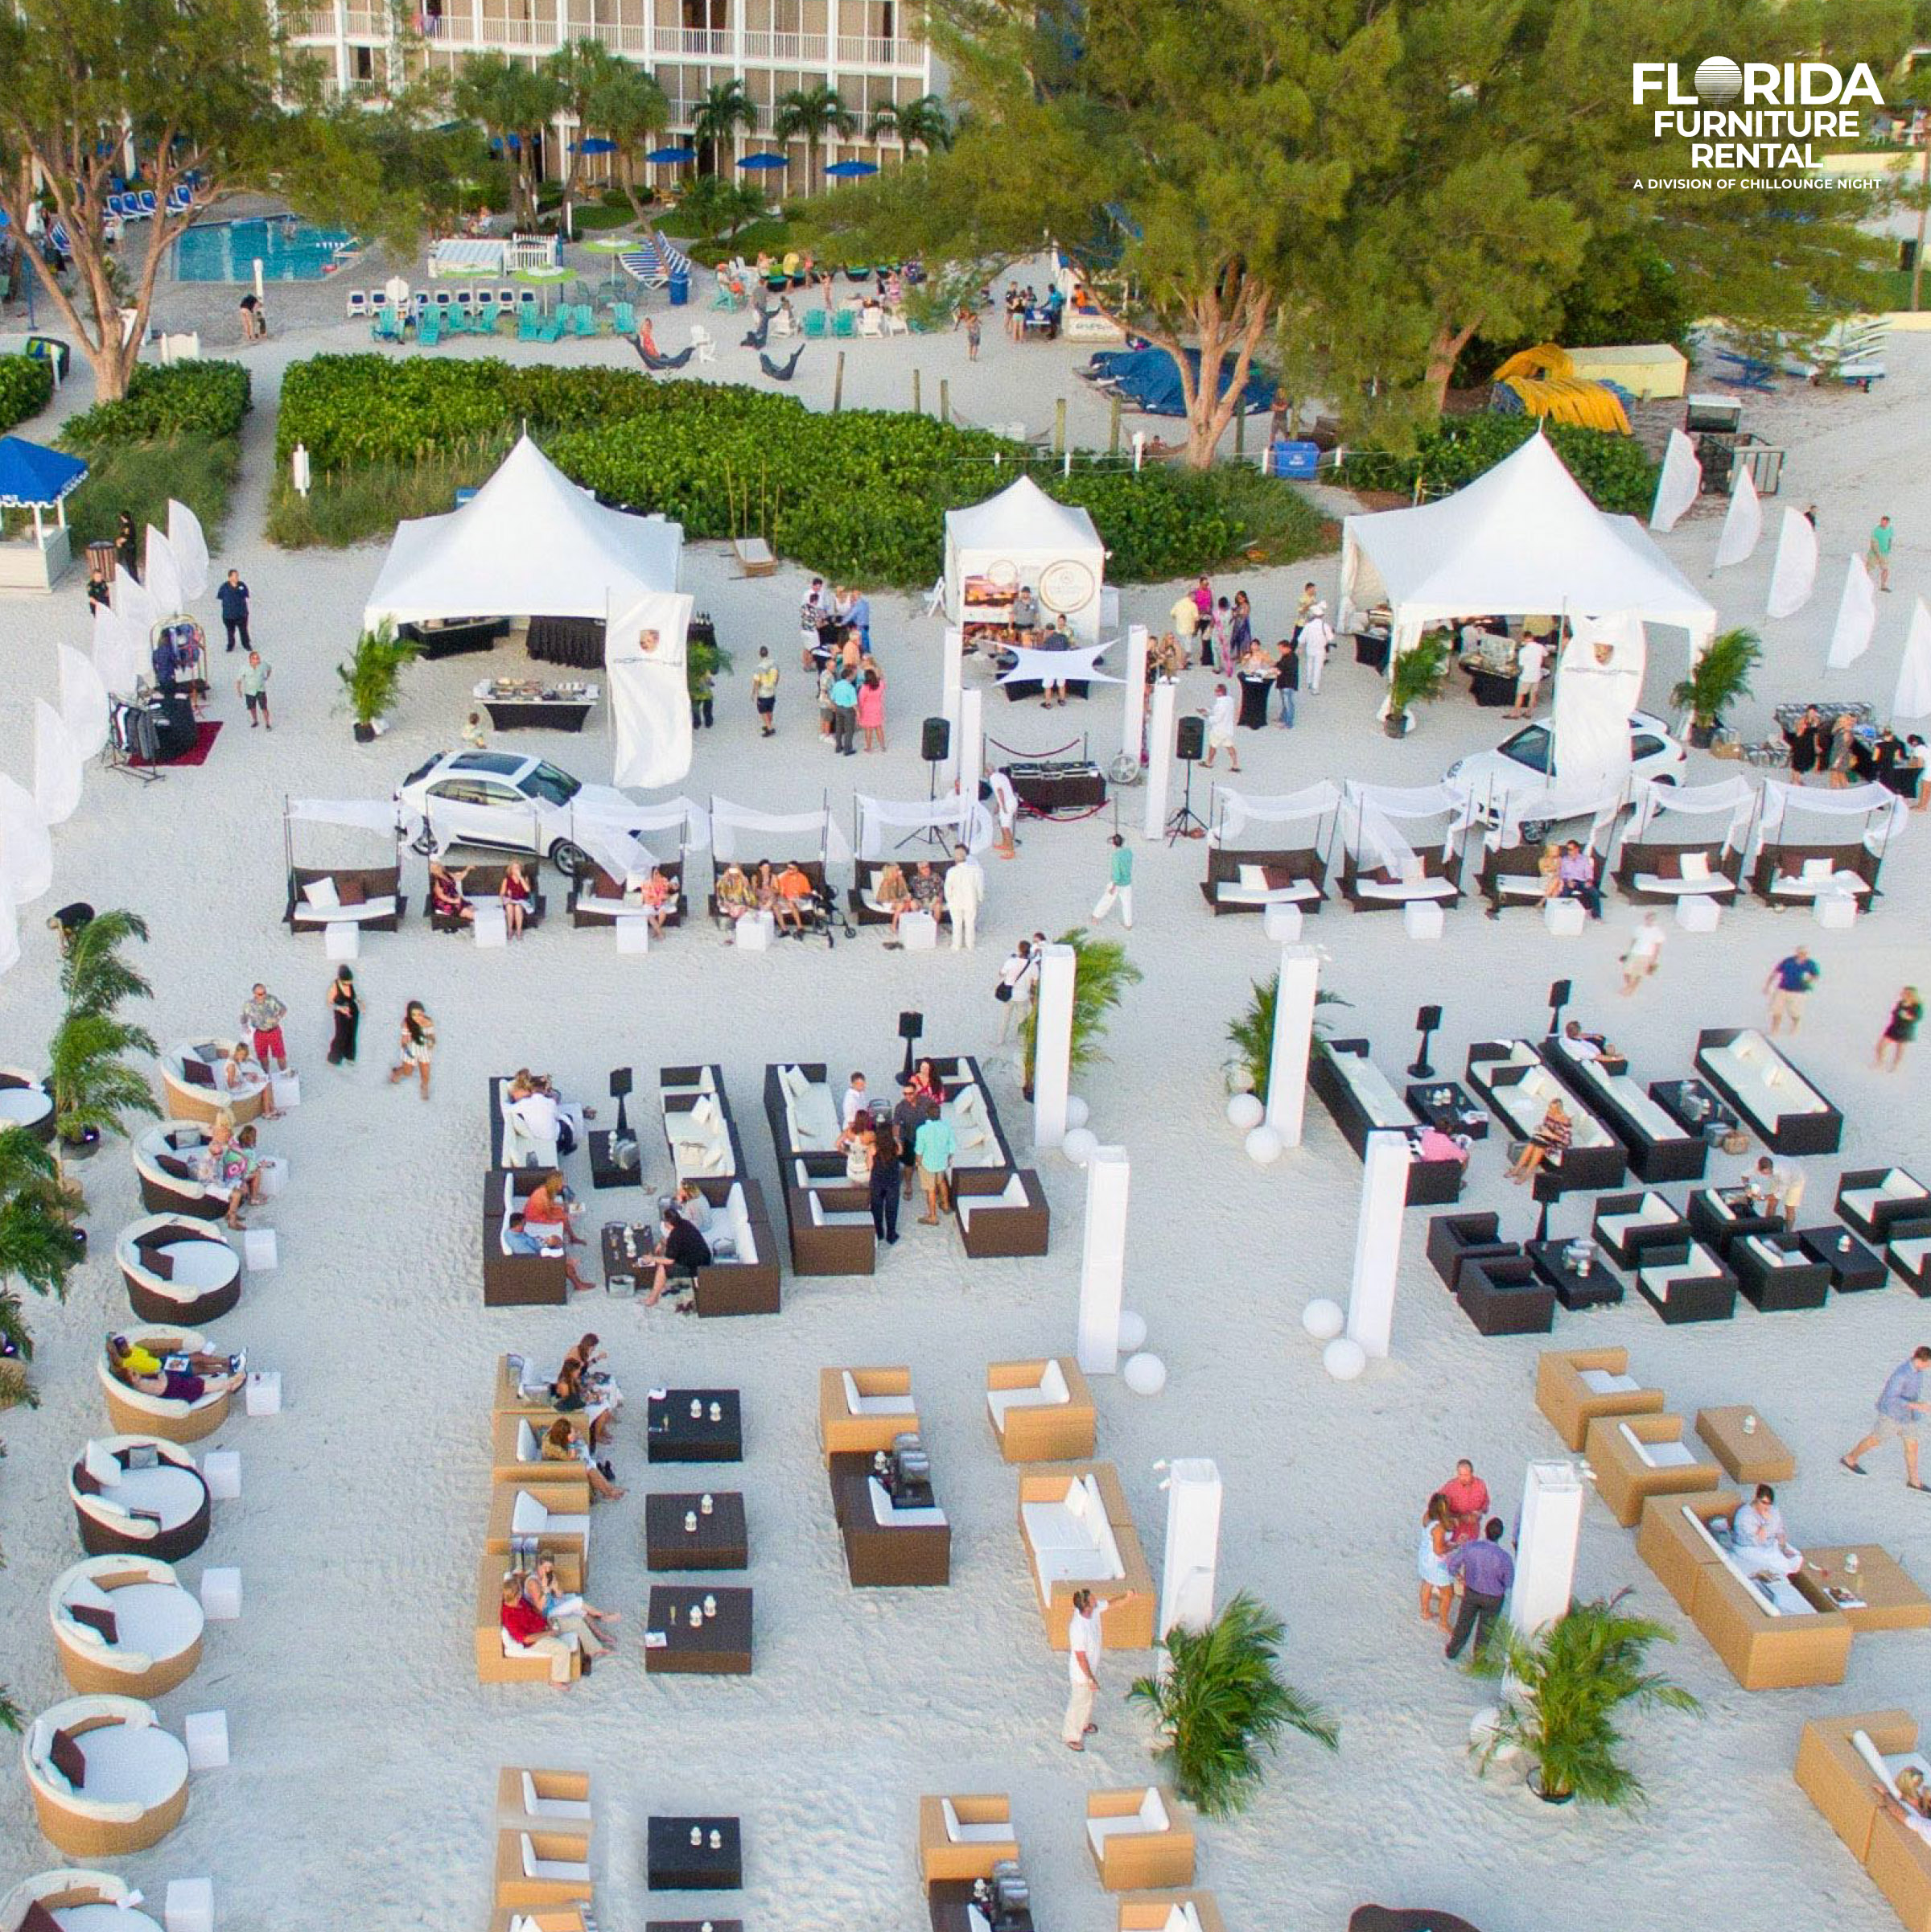 Lounge Furniture Rentals for Events in Miami